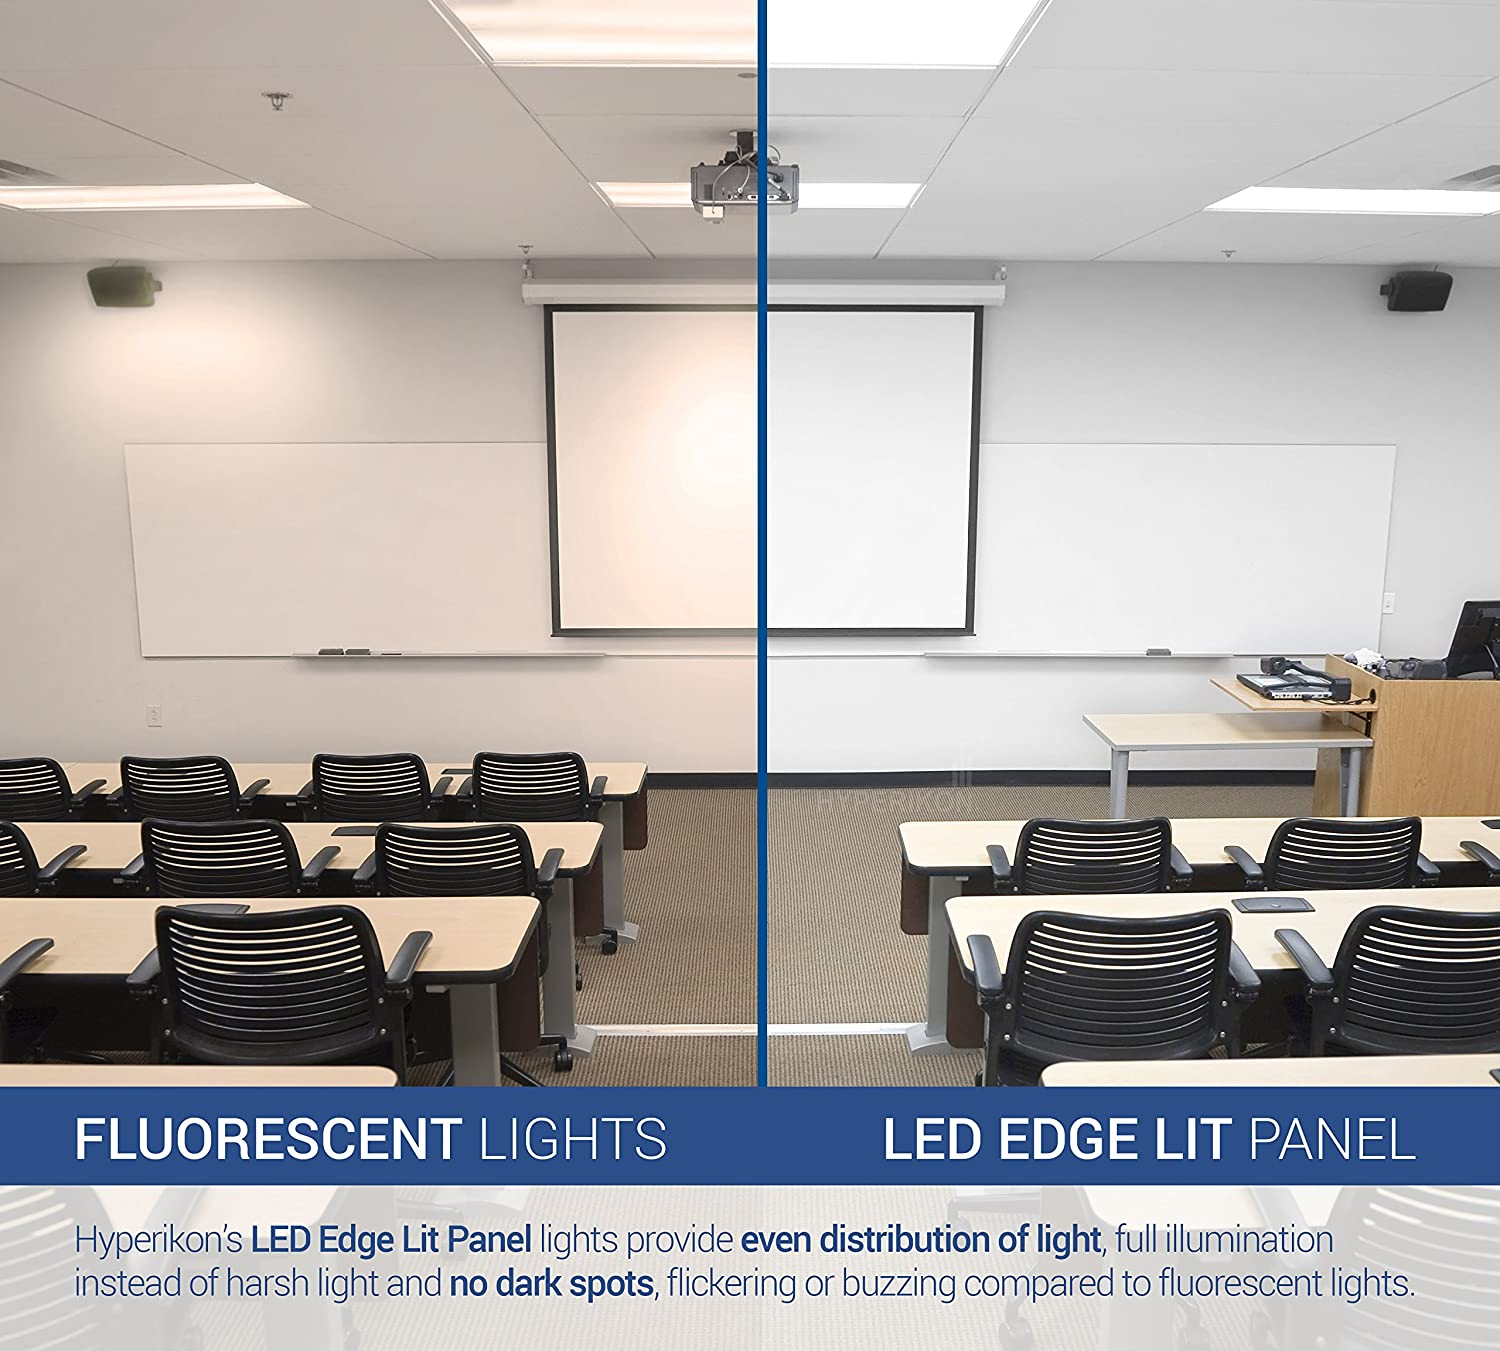 Hyperikon Led Troffer 2x4 Ft Panel Edge Lit Dimmable 50w 200w Office Lighting Fixture Wiring Diagram Equivalency 4000k Day Light 6250 Lumens Drop Ceiling Ul Dlc Pack Of 4